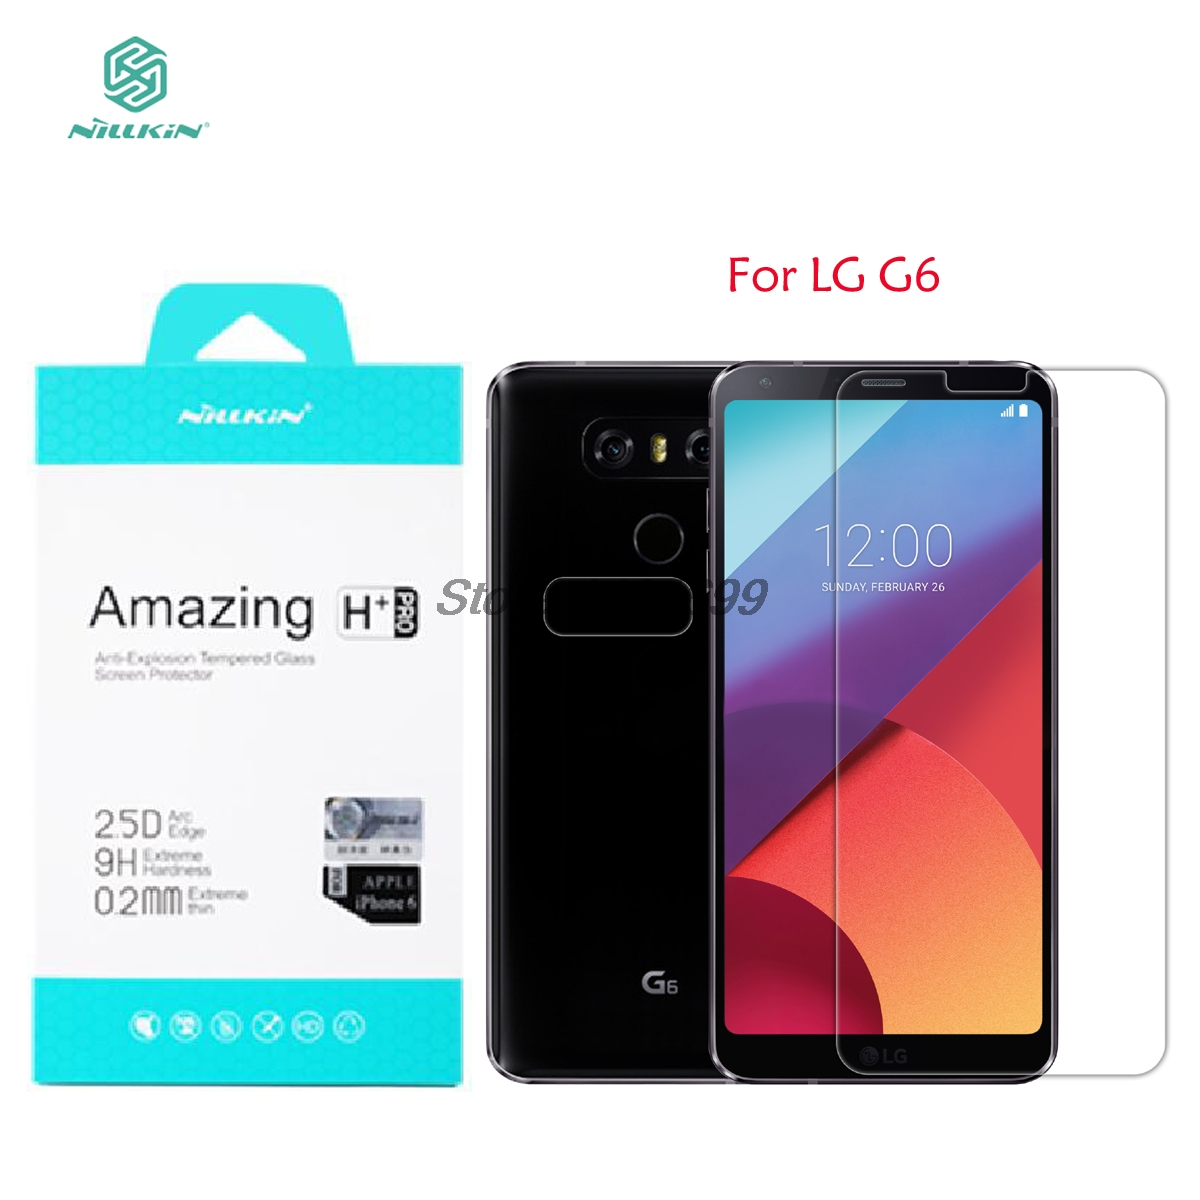 sFor LG G6 Tempered Glass Nillkin Amazing H+PRO Anti-Explosion Screen Protector For LG G6 With Original PackagingsFor LG G6 Tempered Glass Nillkin Amazing H+PRO Anti-Explosion Screen Protector For LG G6 With Original Packaging